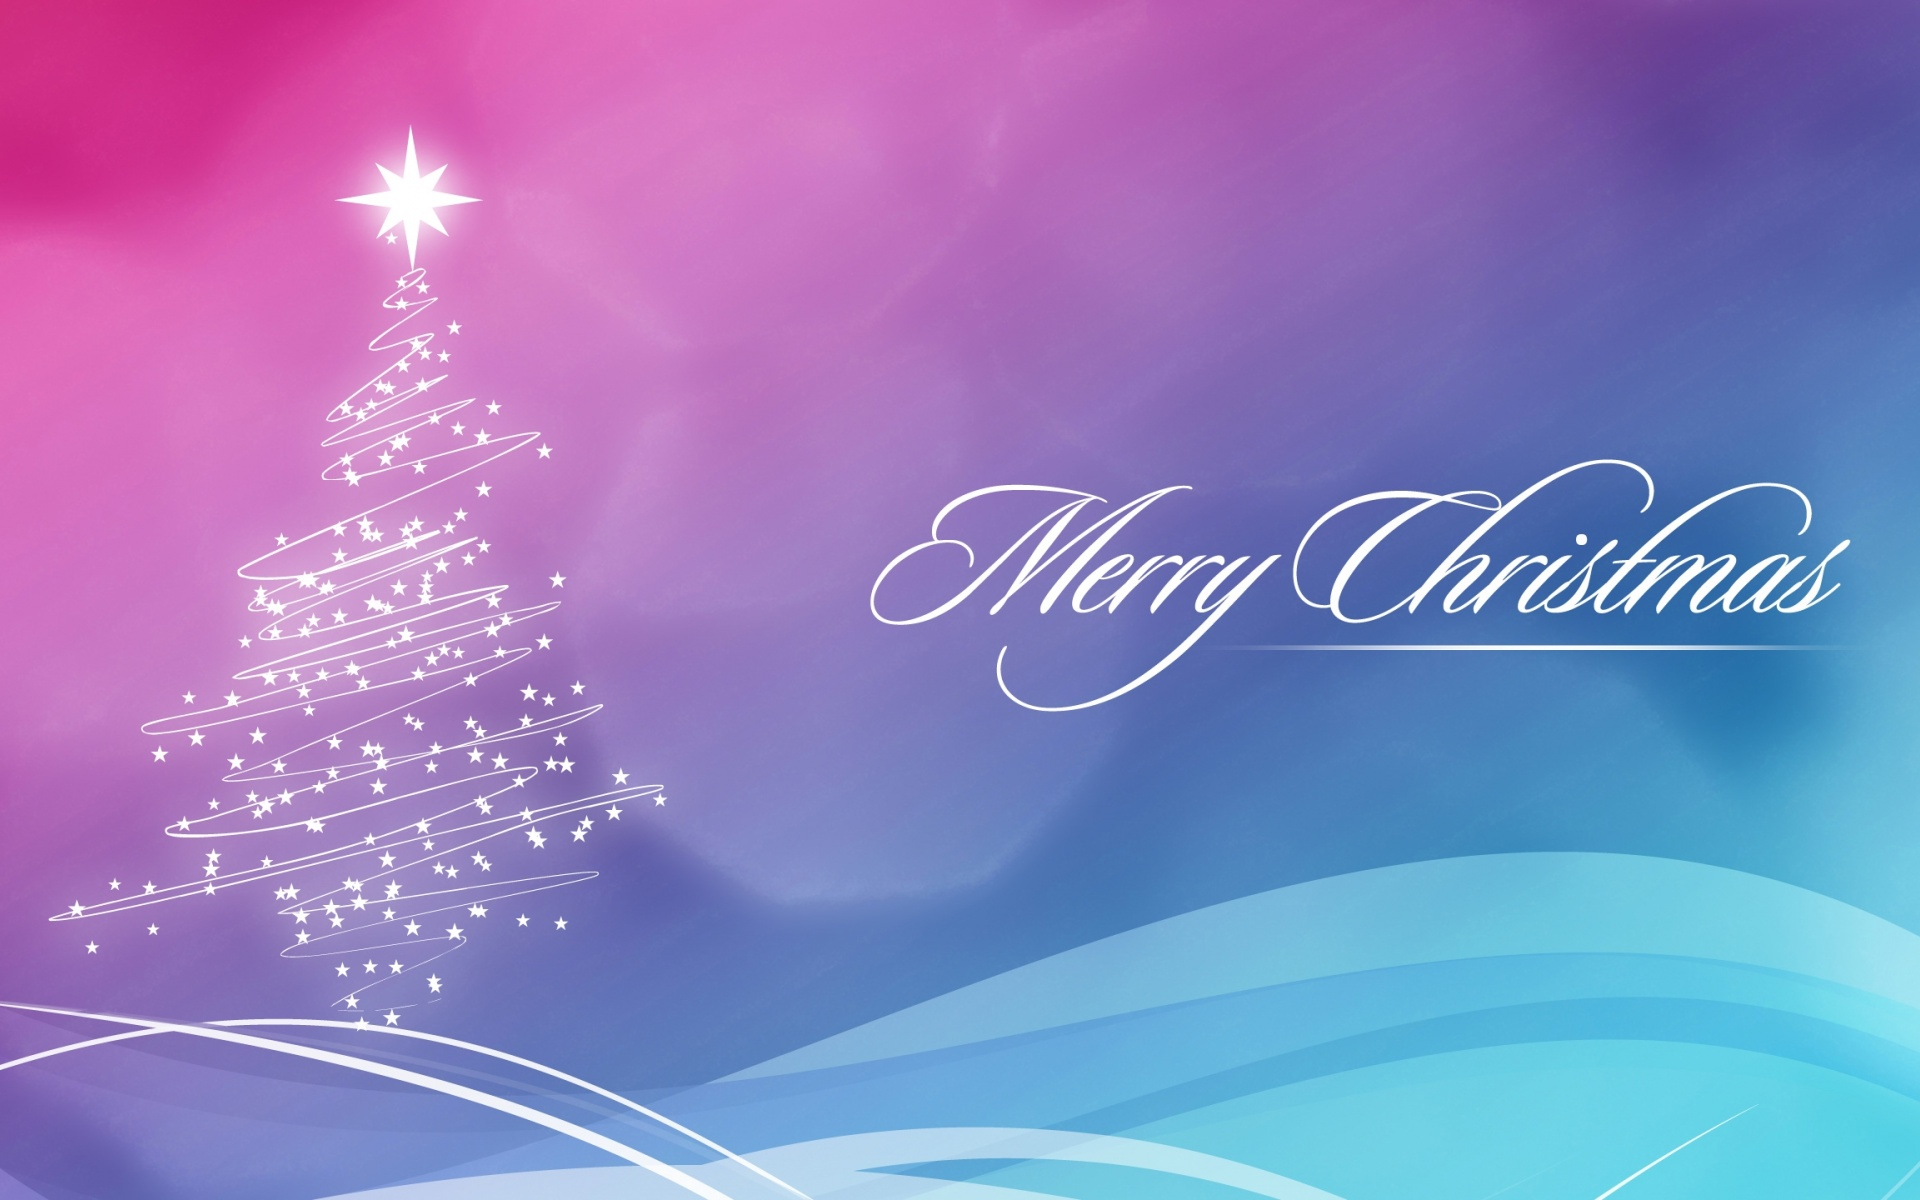 Christmas Greeting Images.1920x1200 Christmas Greeting Desktop Pc And Mac Wallpaper